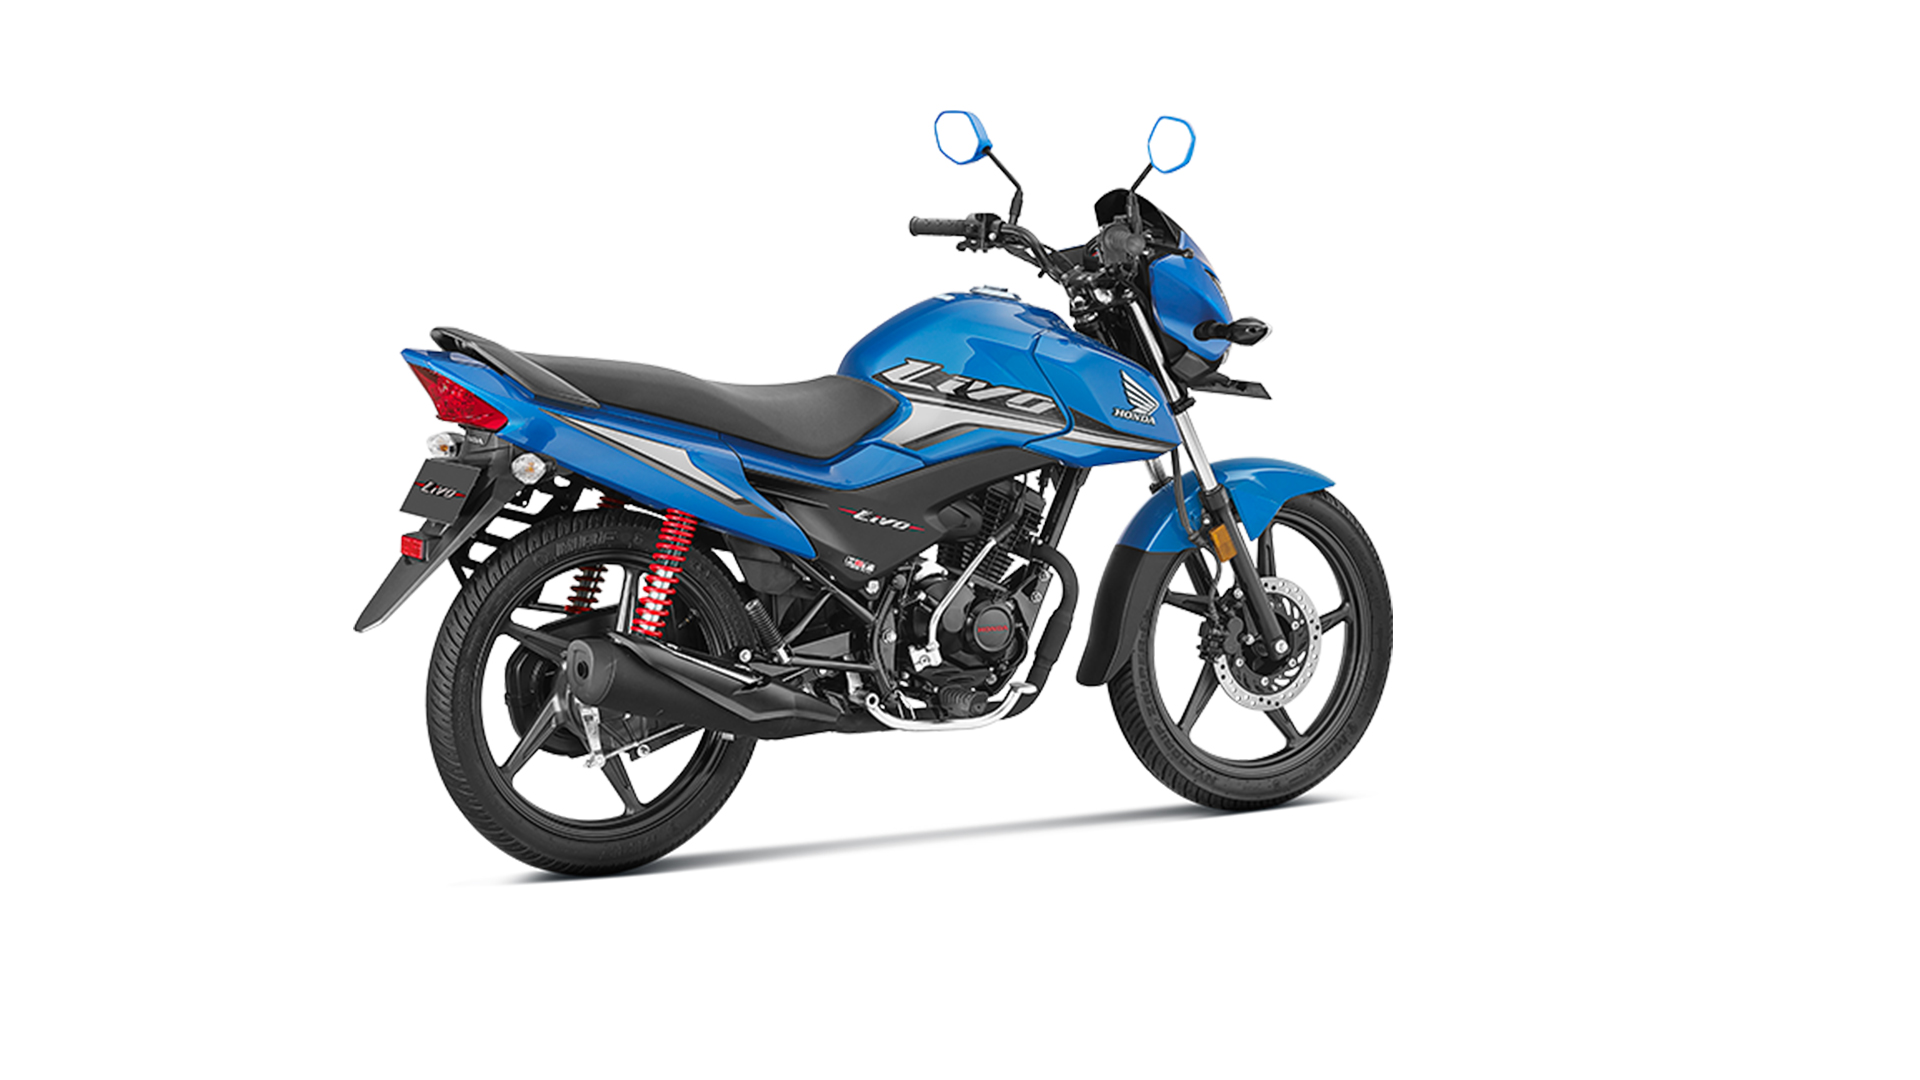 Honda Livo 2018 Disc - Price, Mileage, Reviews ...